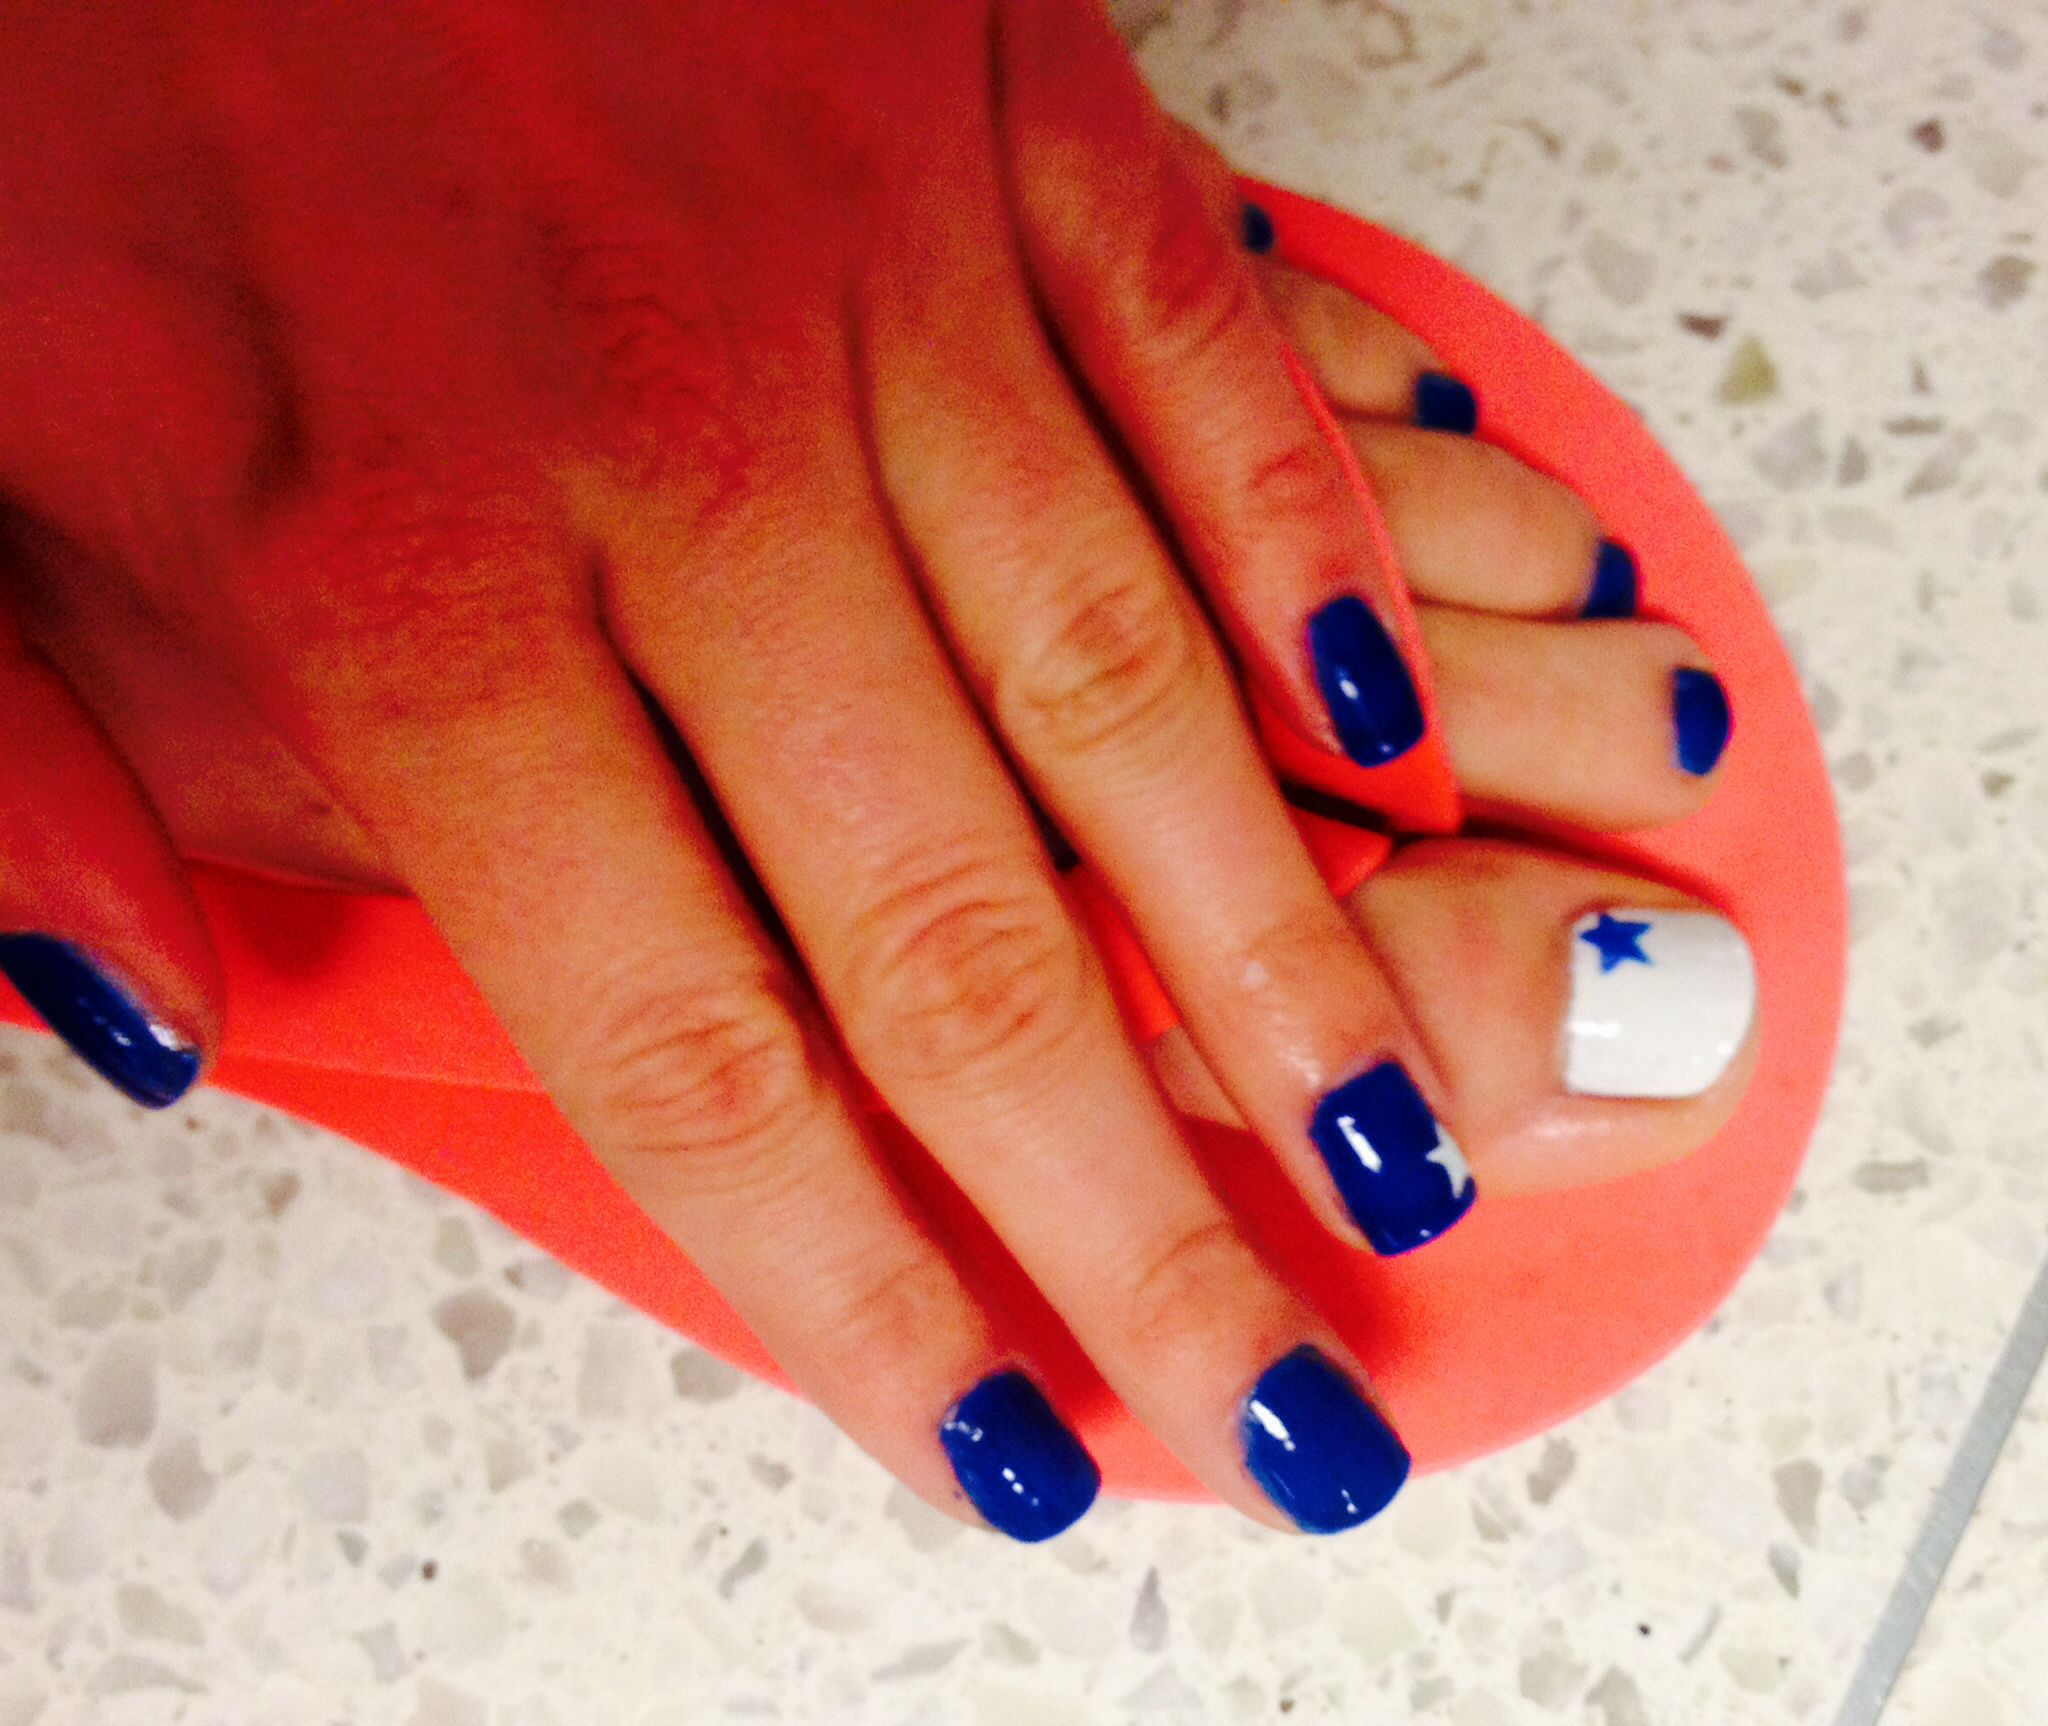 Dallas Cowboys nail art!! | Dallas Cowboys | Pinterest | Dallas ...